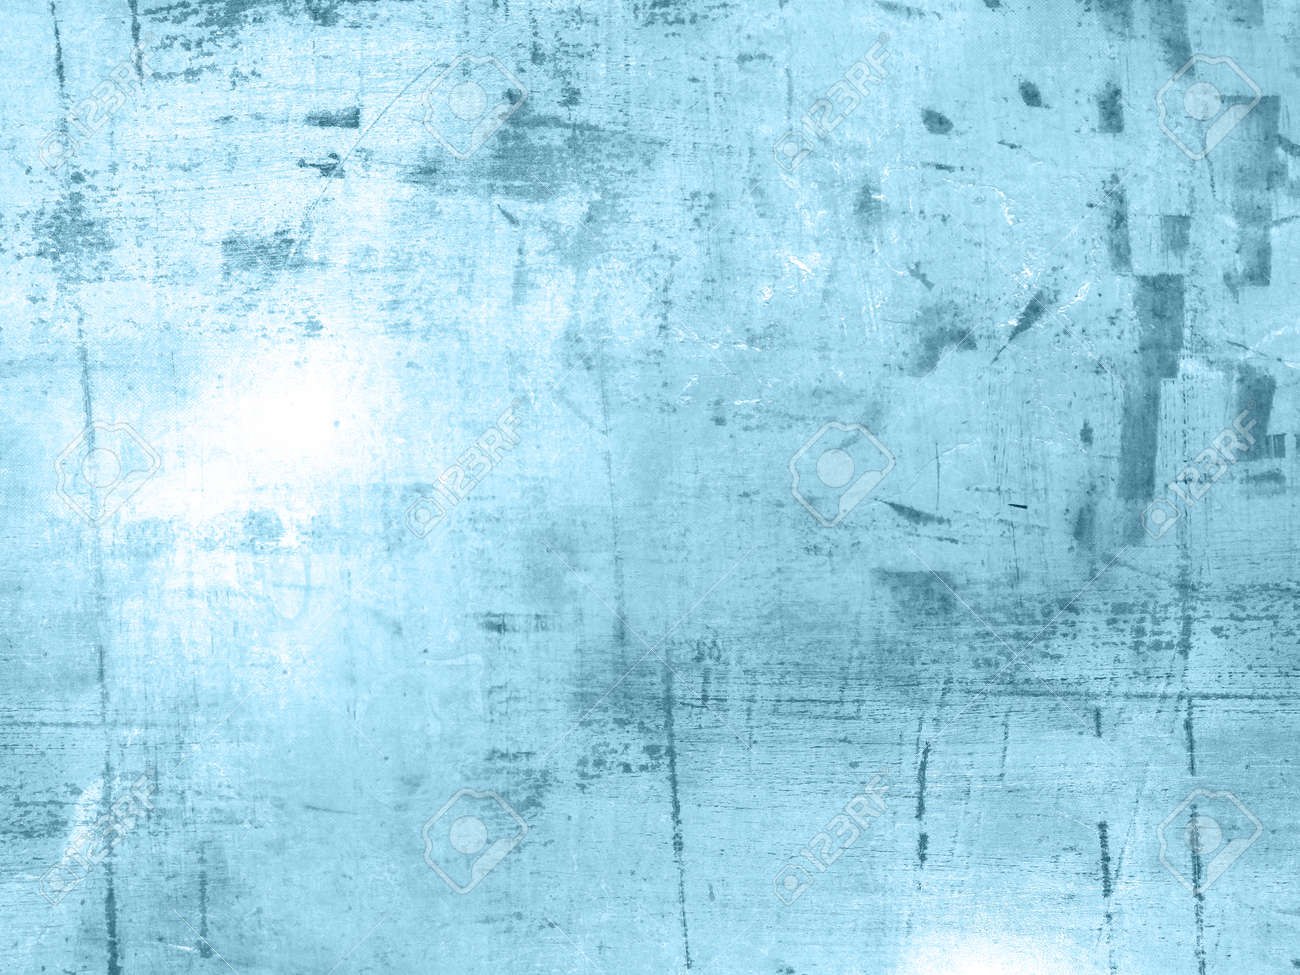 Cyan Background Abstract Light Blue Grunge Texture